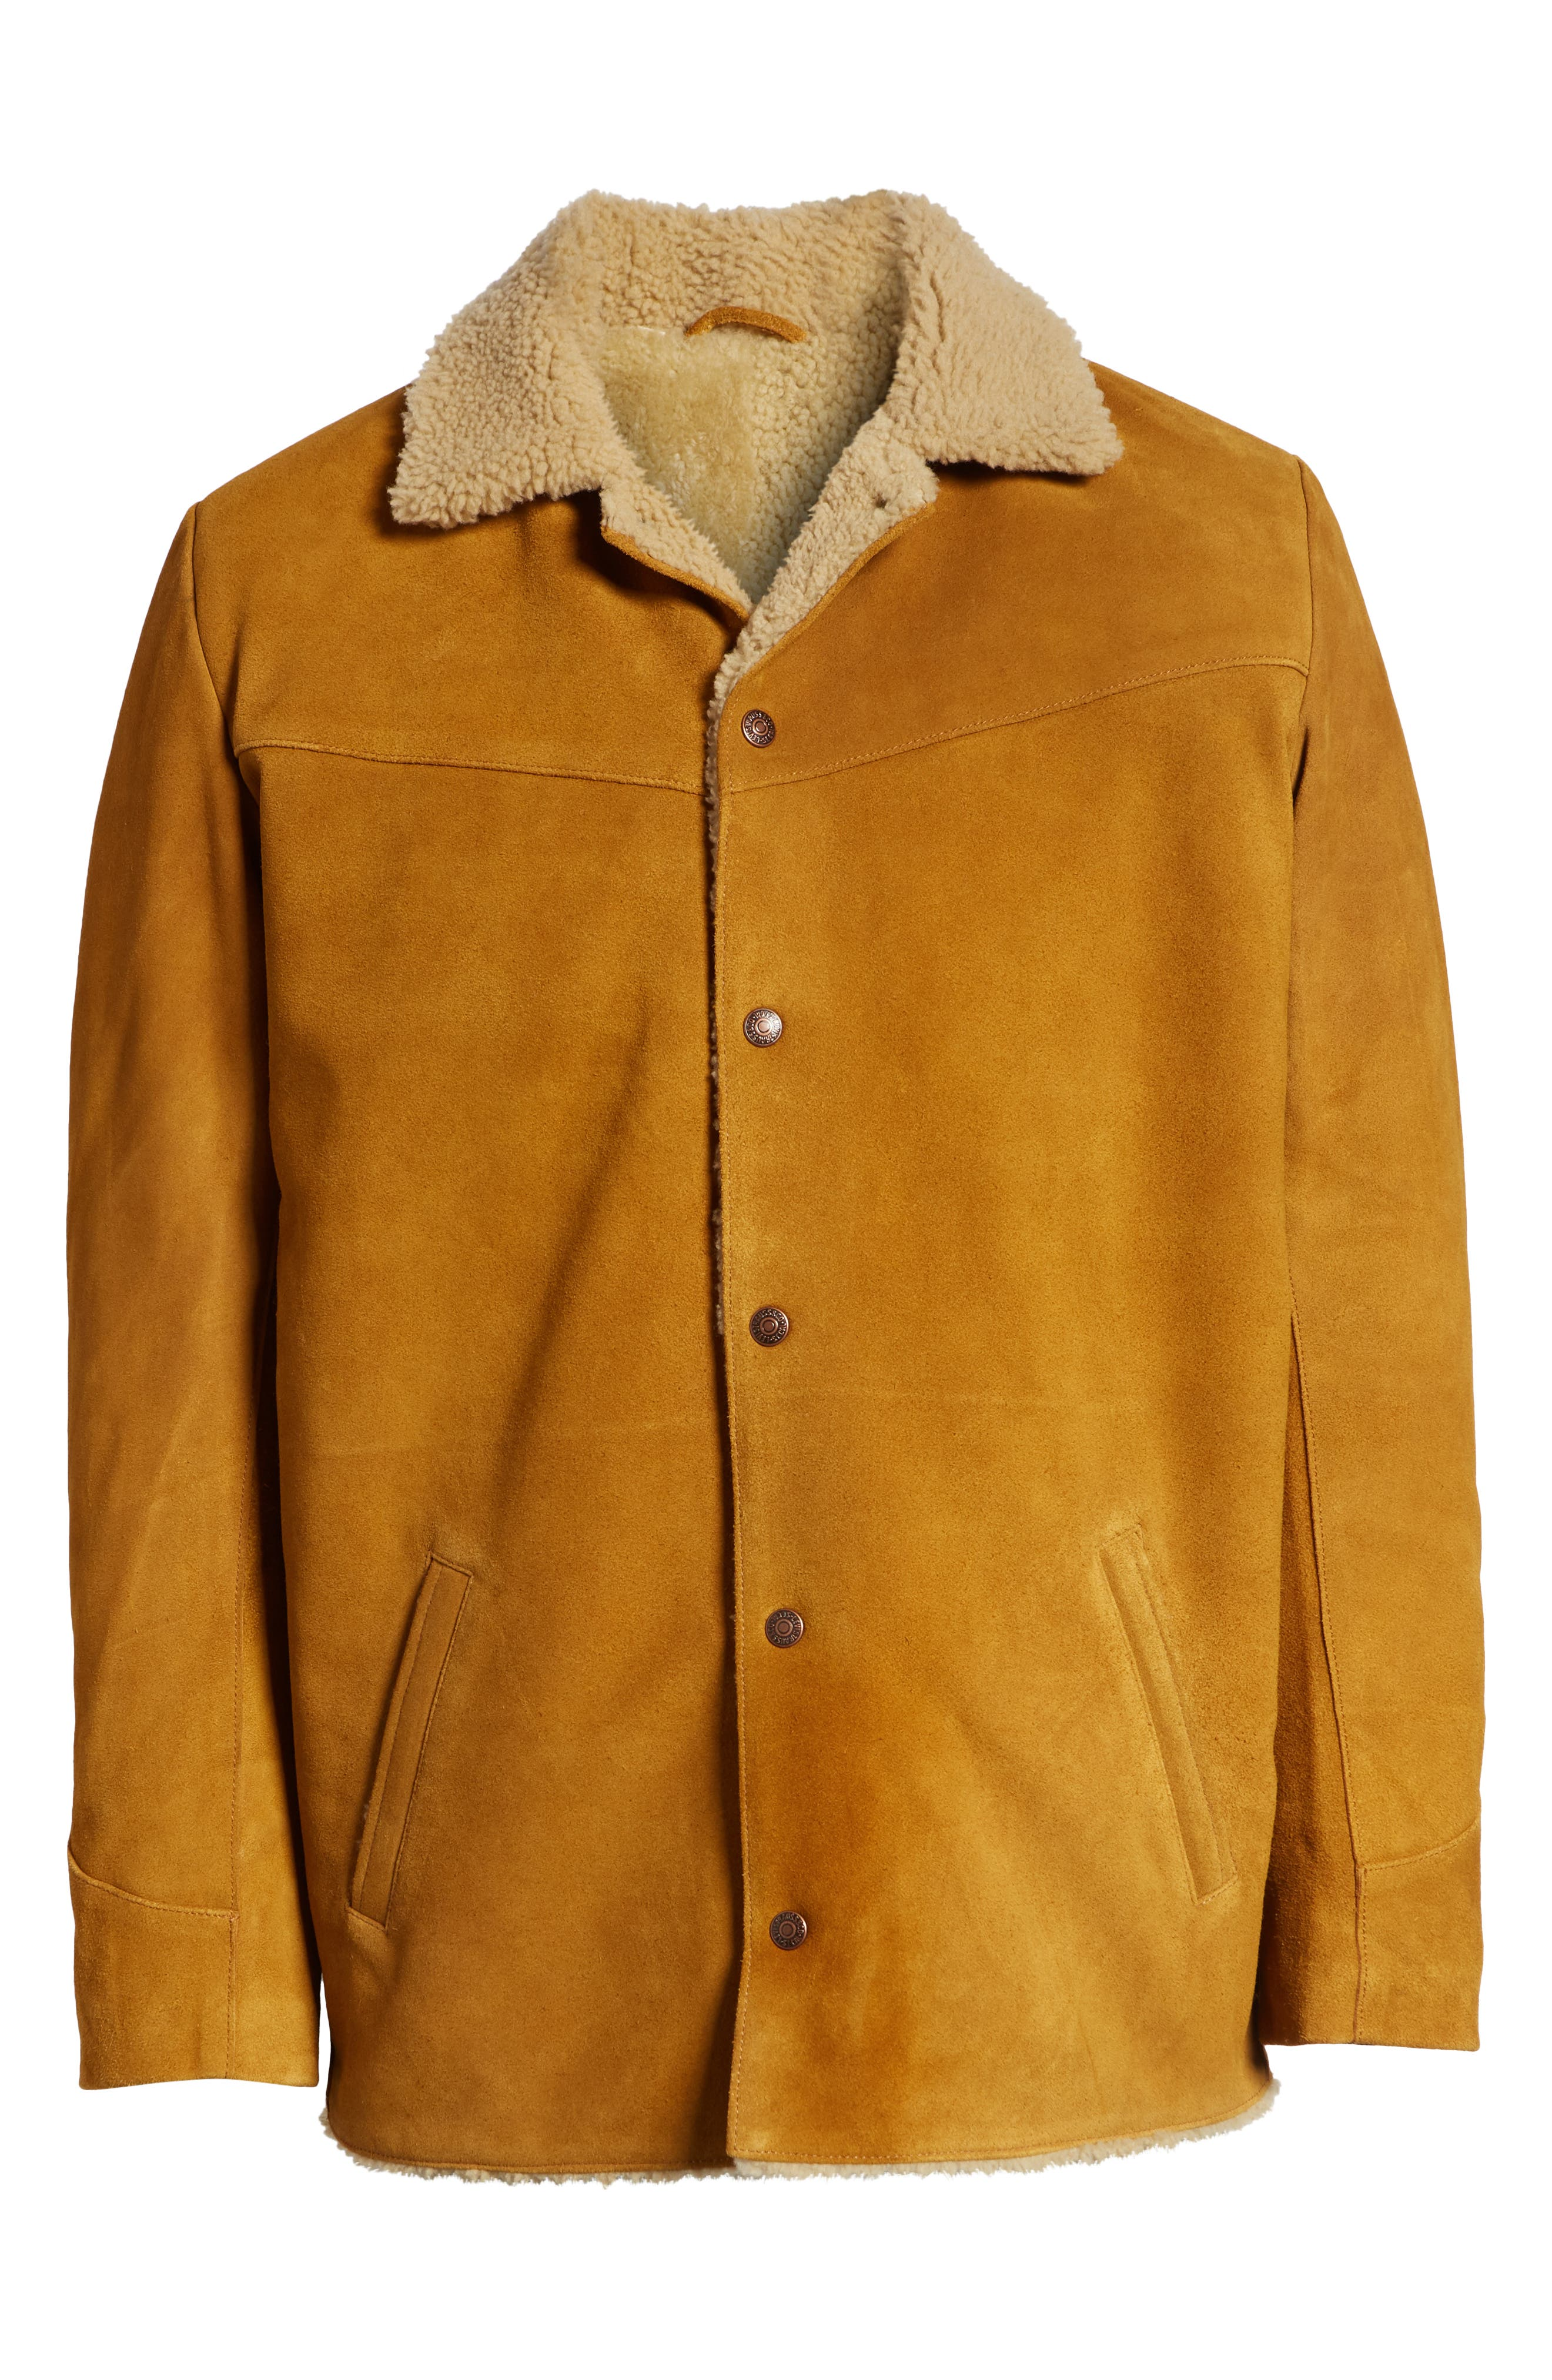 Levi's<sup>®</sup> Fleece Lined Suede Jacket,                             Alternate thumbnail 5, color,                             250